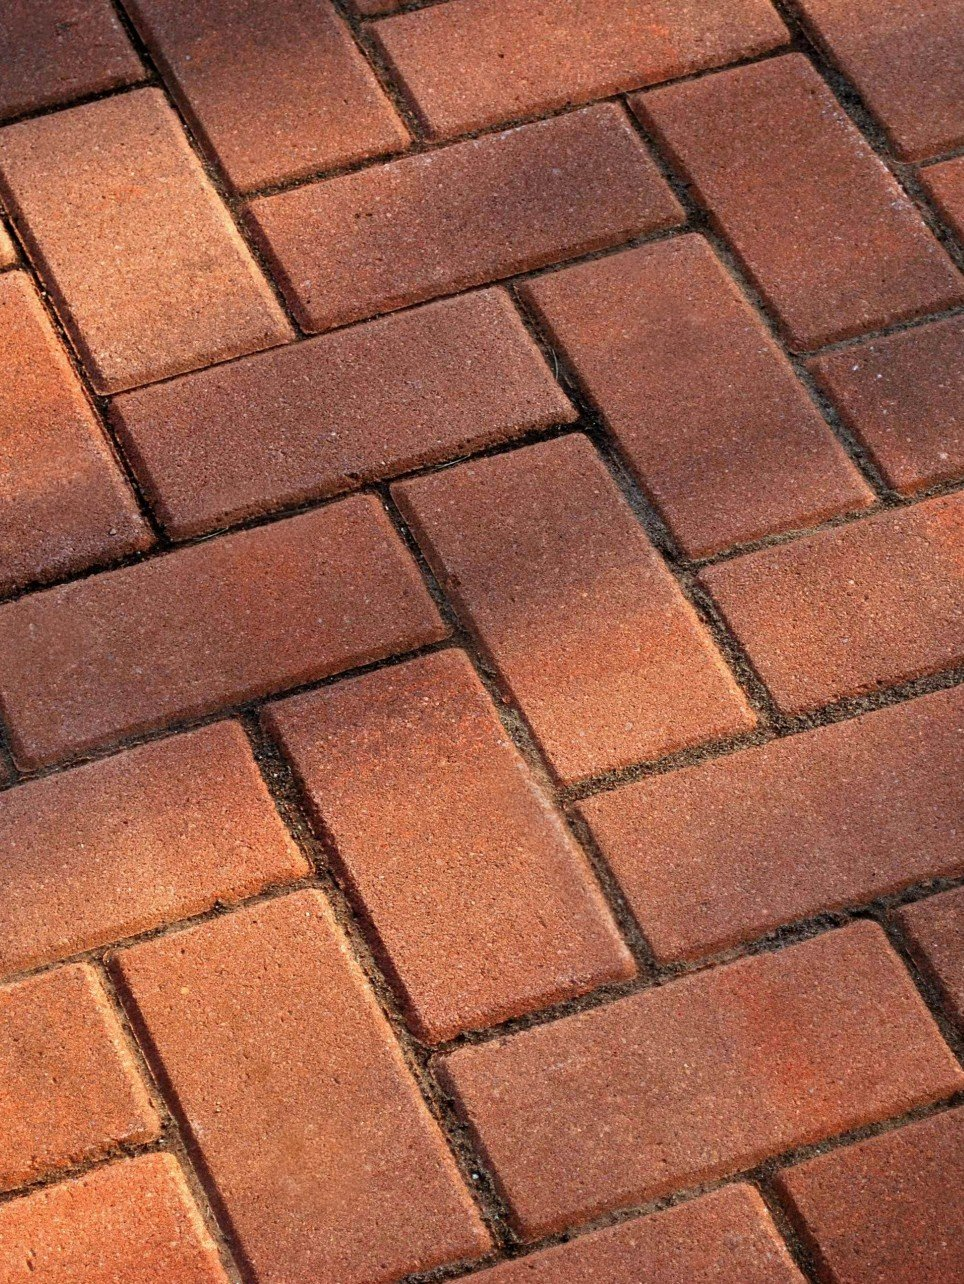 Block Paving Companies Aston